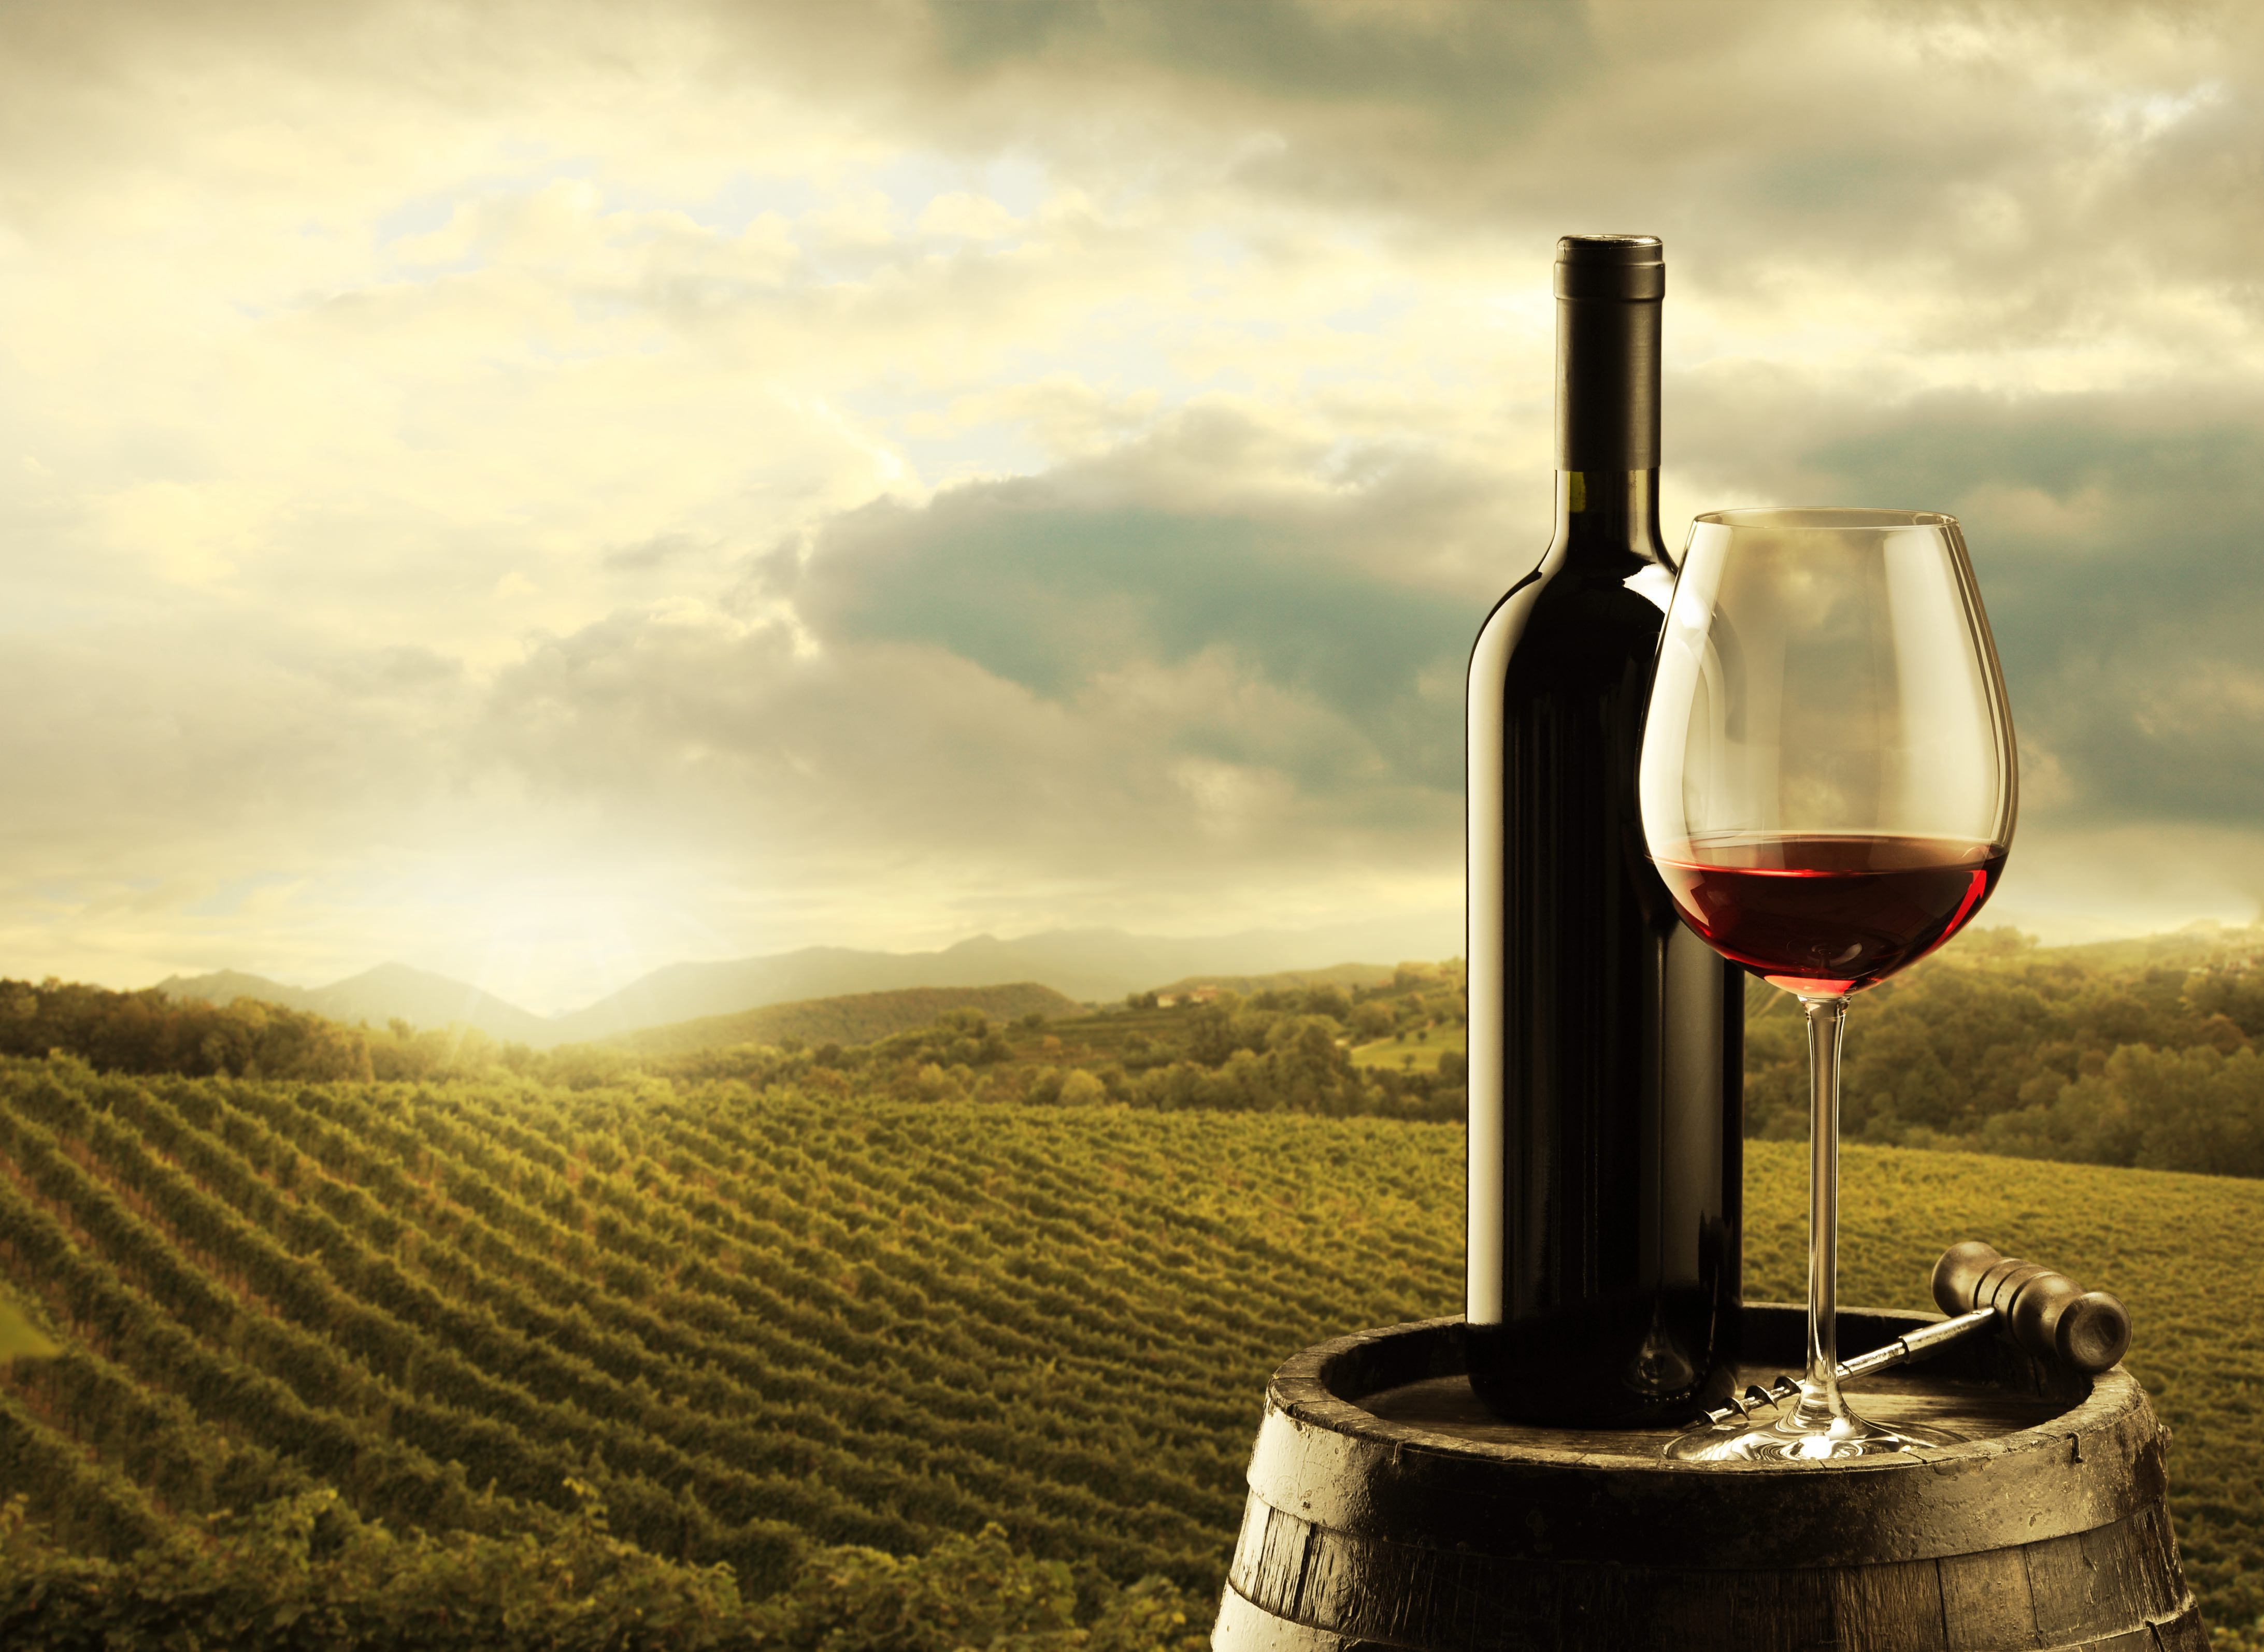 wine wallpapers images photos pictures backgrounds